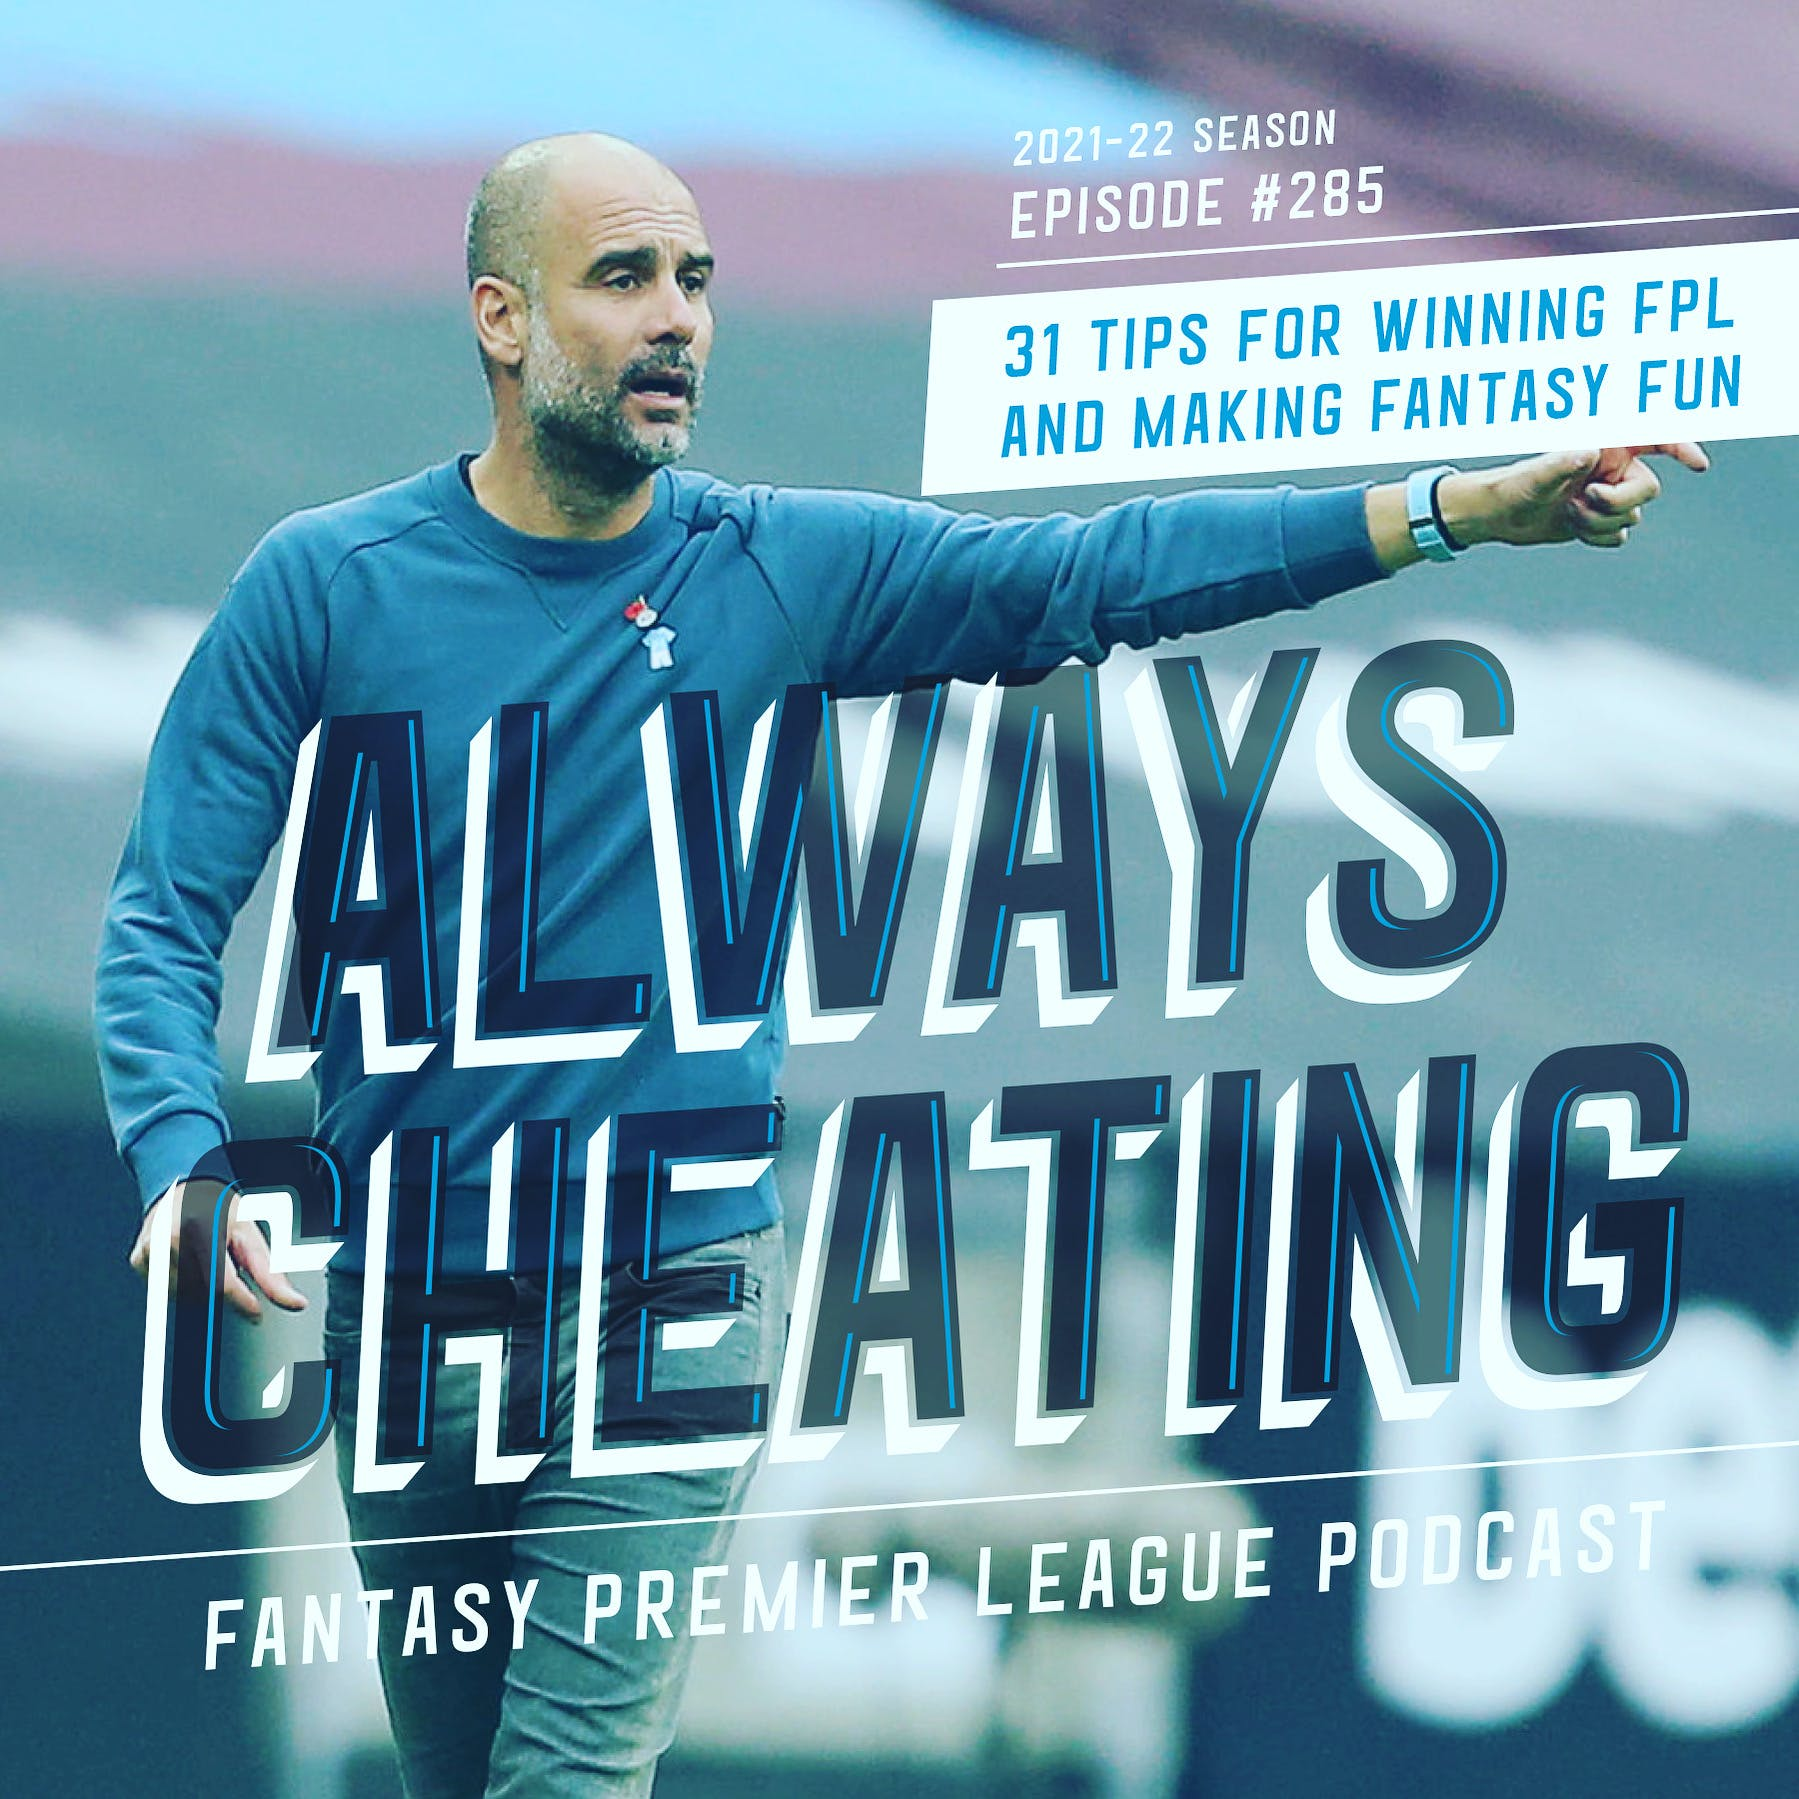 31 Tips for Winning FPL and Making Fantasy Fun Again